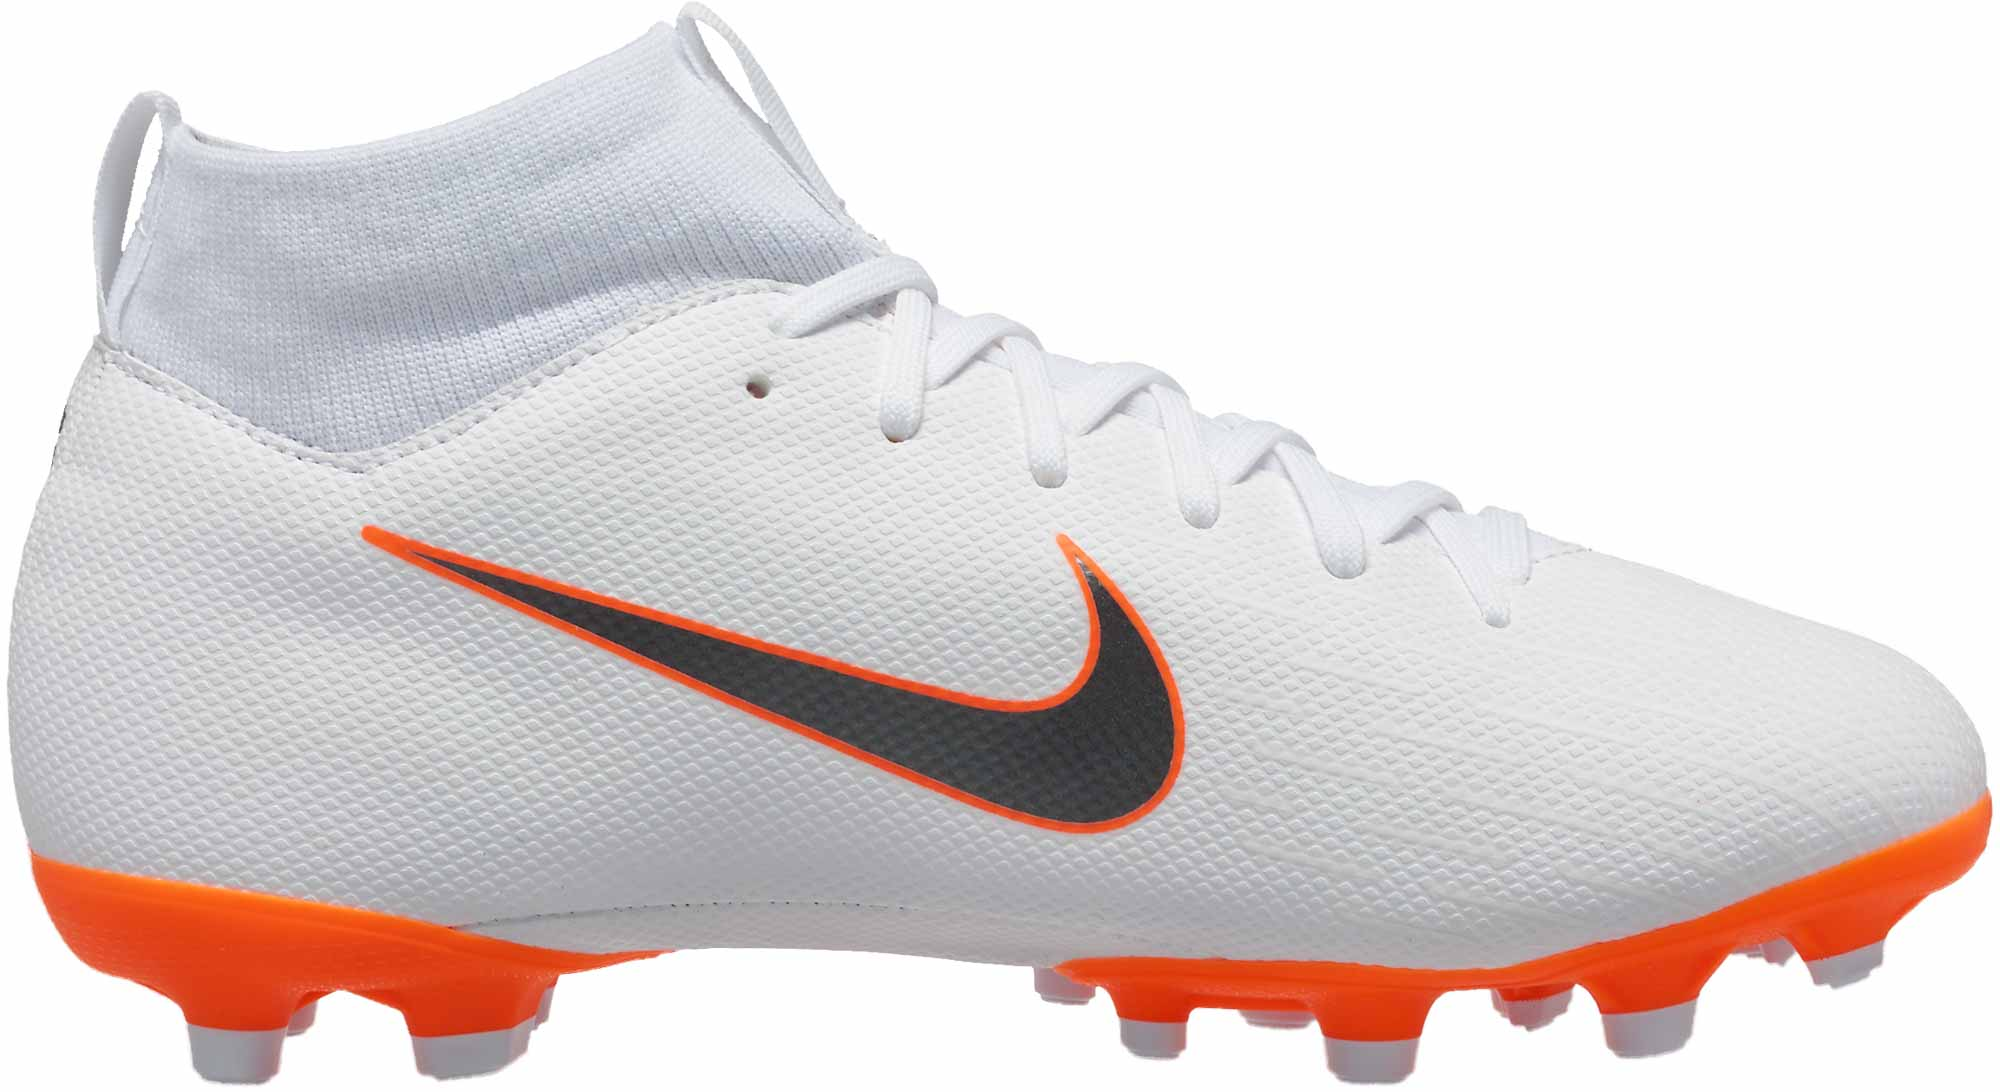 8a7bc7a579d Nike Mercurial Superfly 6 Academy MG – Youth – White Metallic Cool  Grey Total